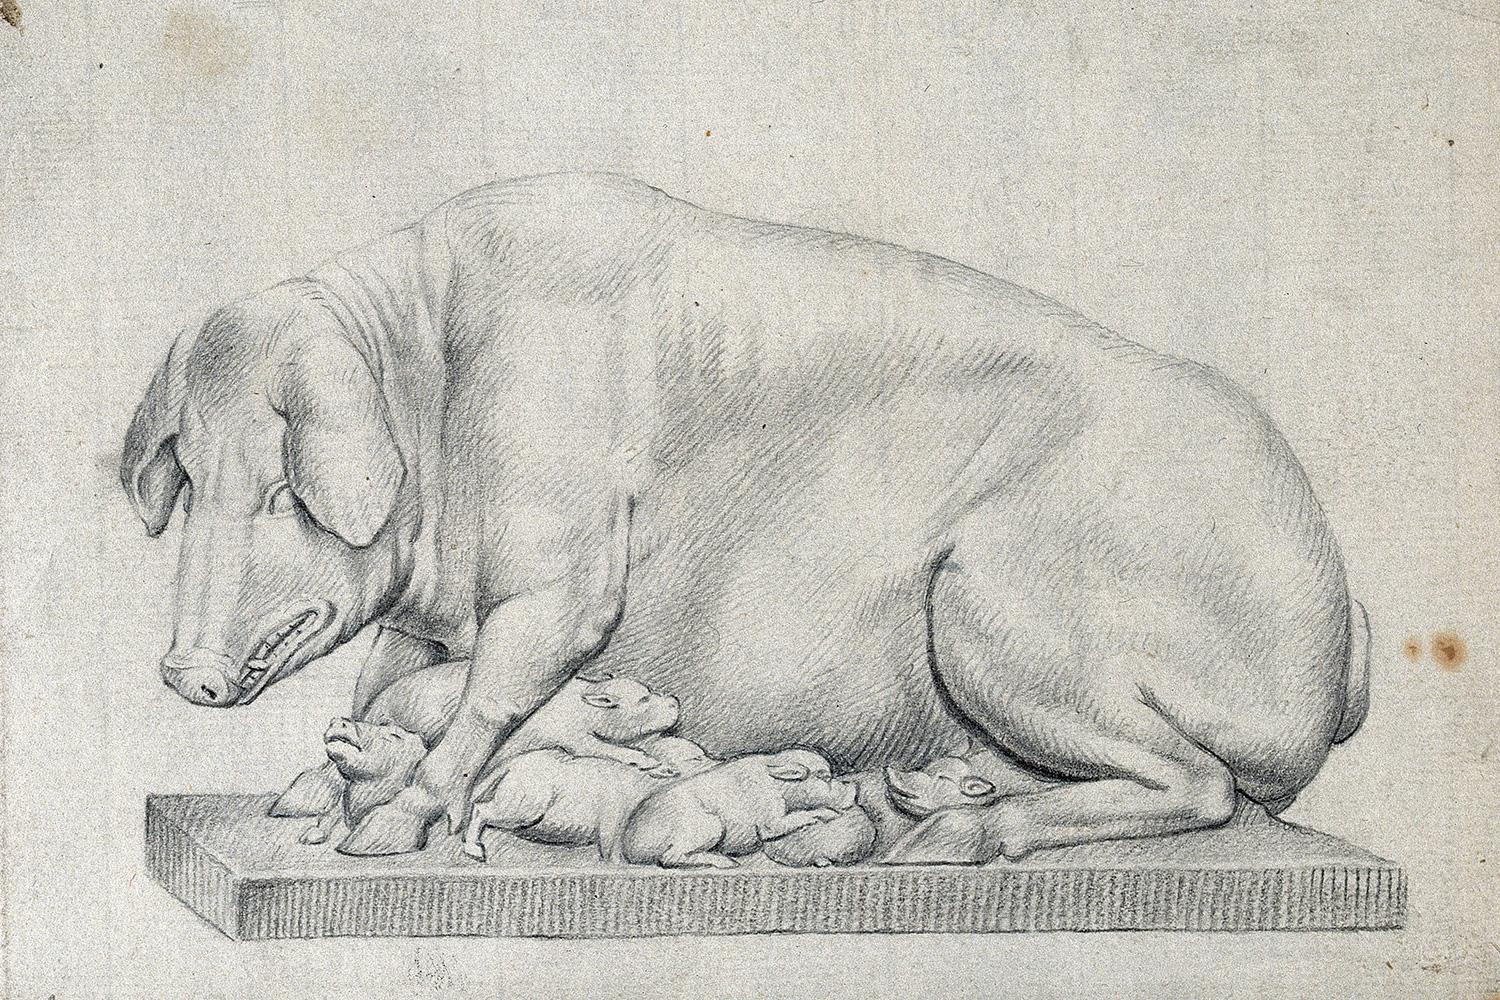 A statue of a hog with litter of suckling piglets. Pencil drawing by William Young Ottley (1771-1836). The picture is of a pencil drawing of a pig and her pups. CC BY 4.0 via Wellcome Collection